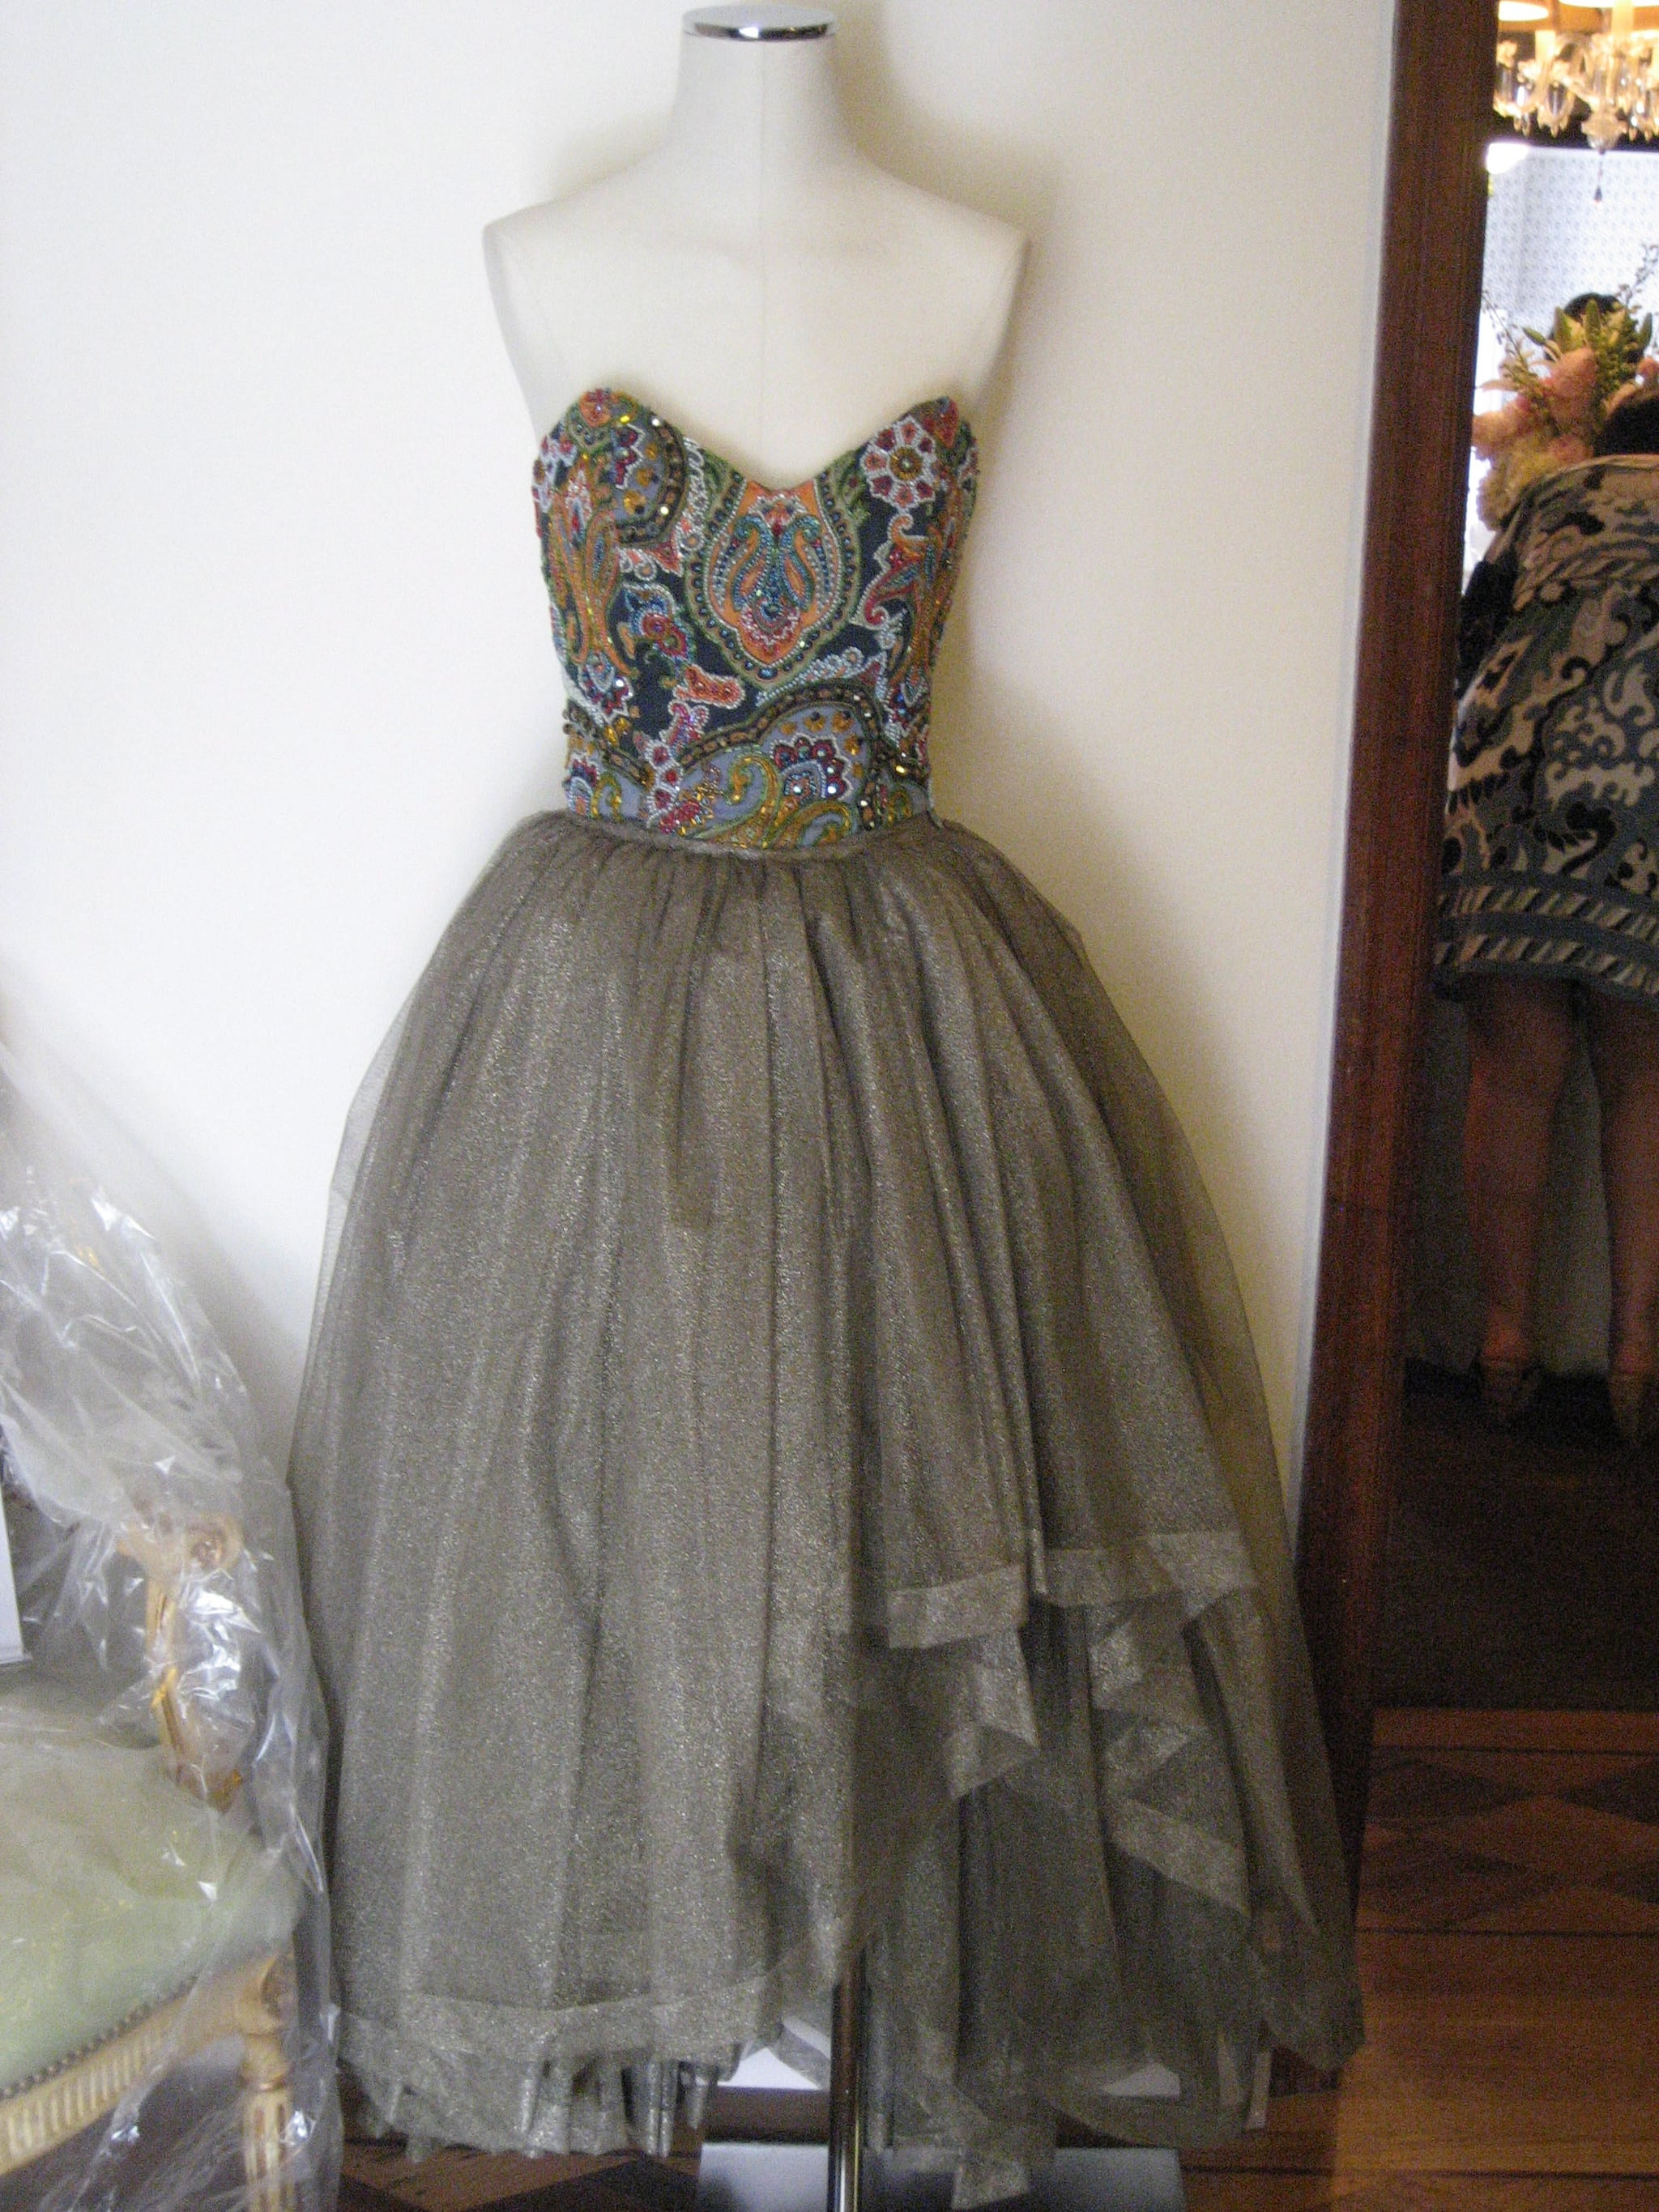 A dress fit for Carrie Bradshaw.